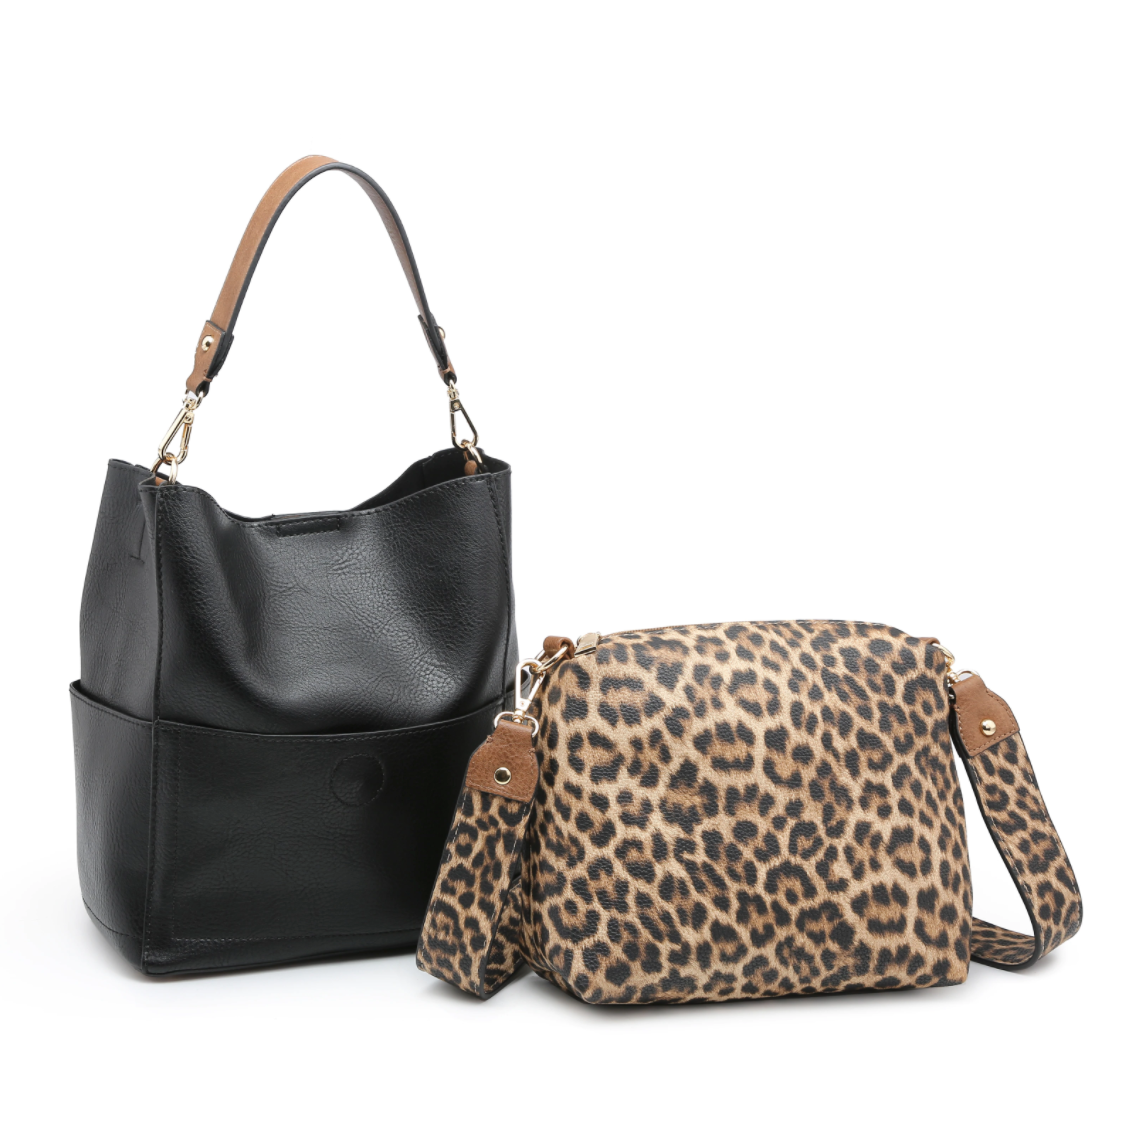 Abby Bucket Bag with Accent Bag in a Bag